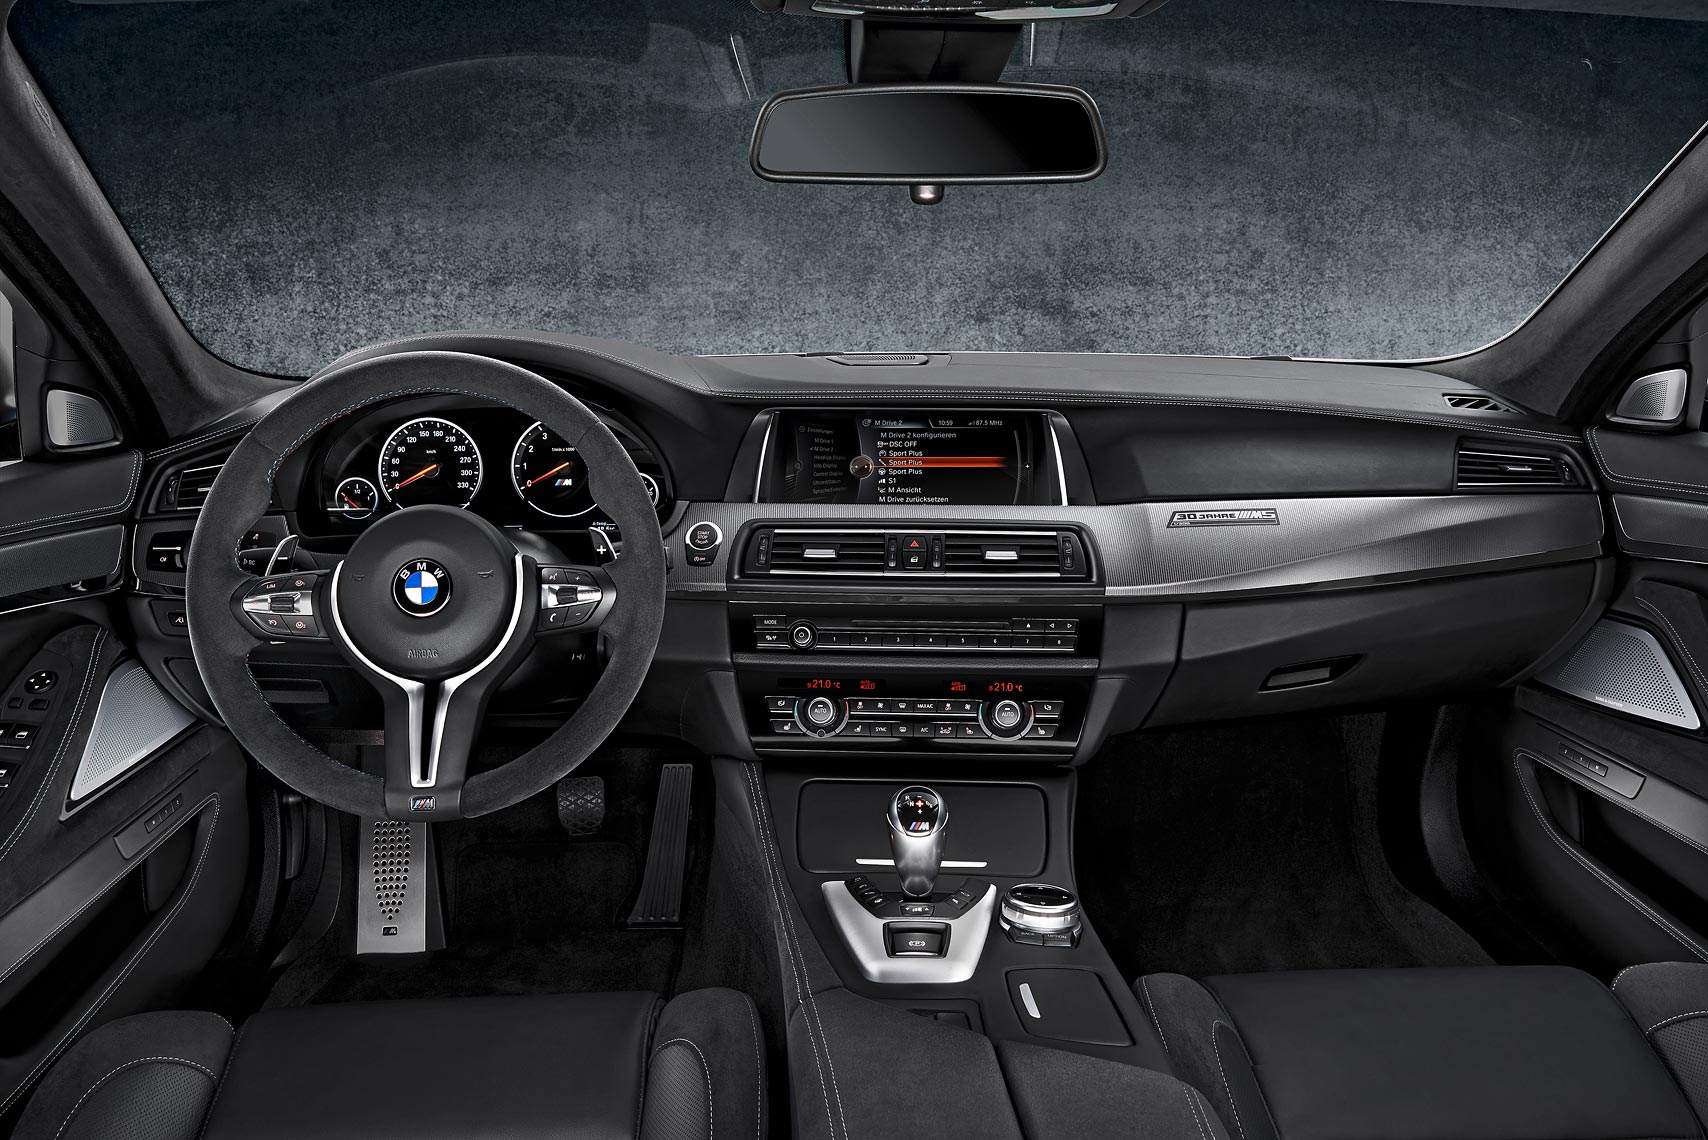 BMW_M5_30Edition_Int_Dashboard_GER_RGB_A4_FIN